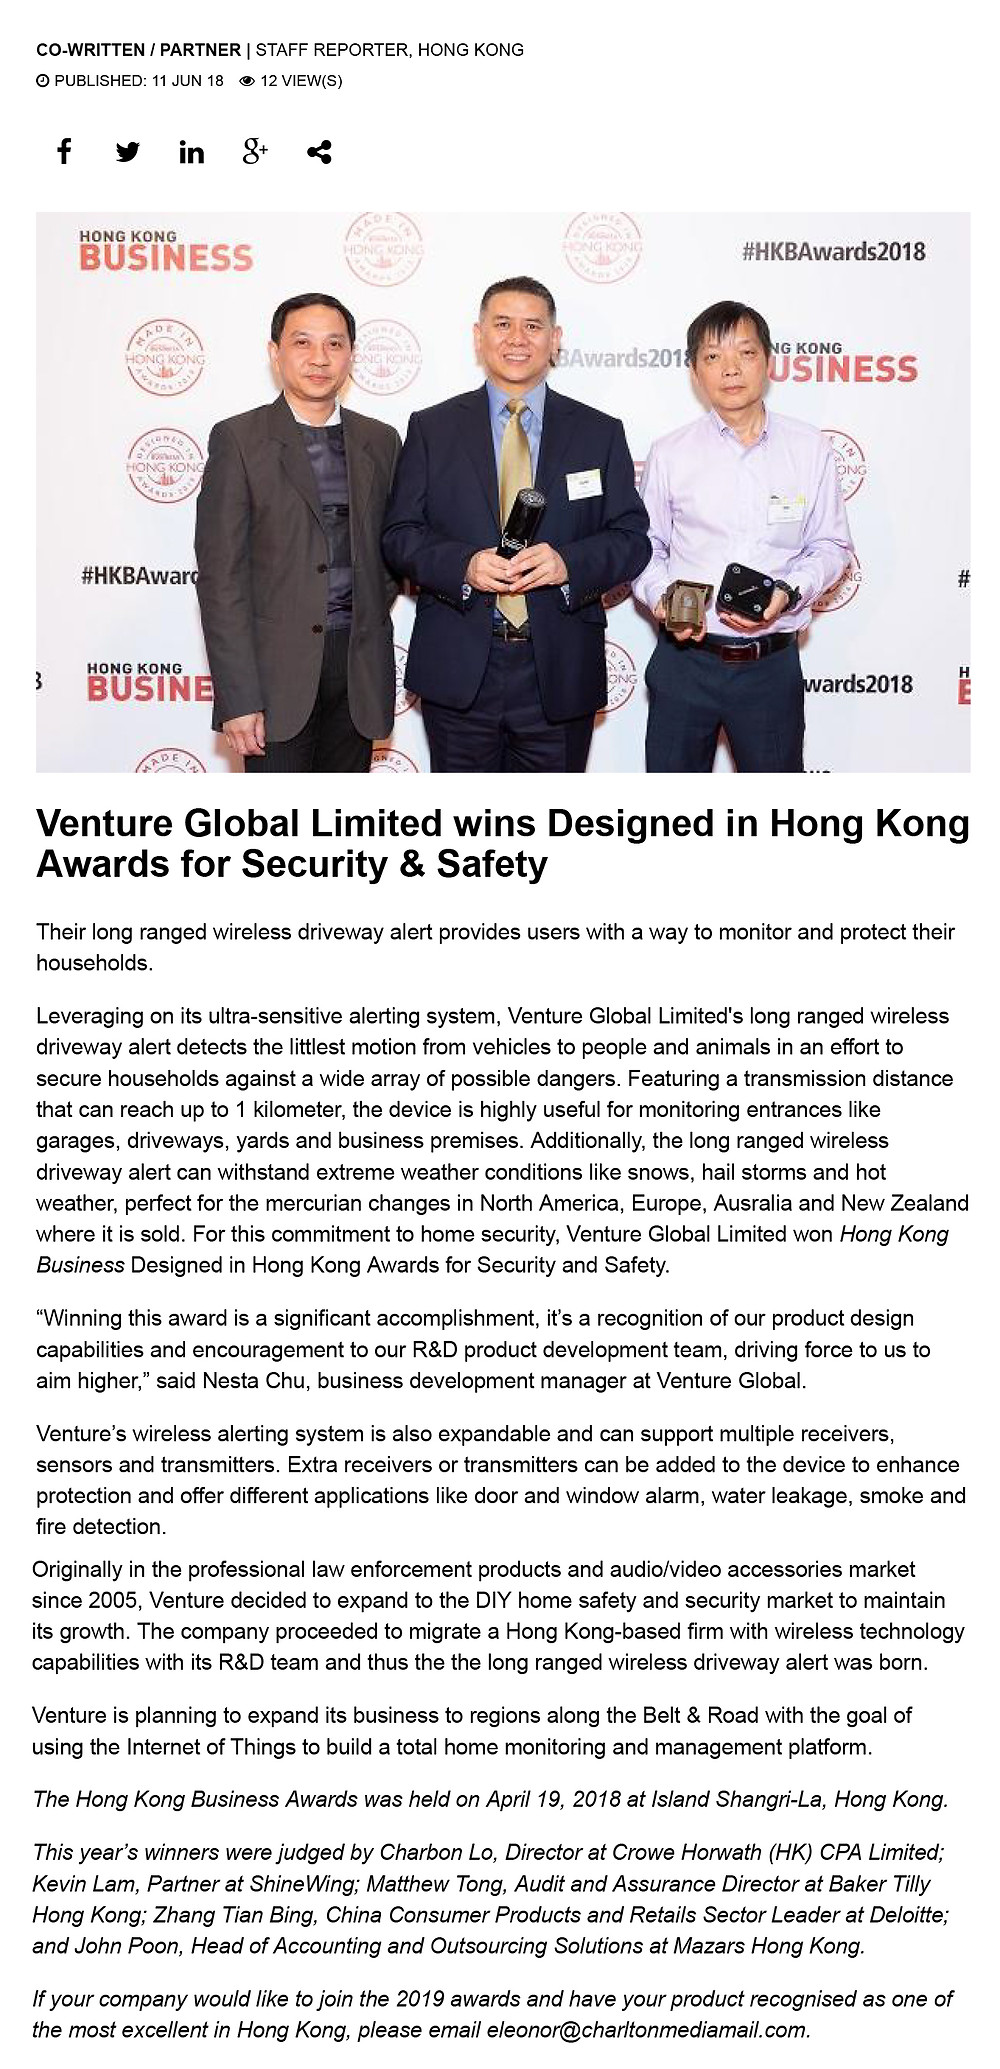 VENTURE redefines safety and security with the Long-ranged Wireless Driveway Alert May 2, 2018  |  Hong Kong Business Magazine May 2018  Sources from: Hong Kong Business Magazine (Online version 11 jun 2018